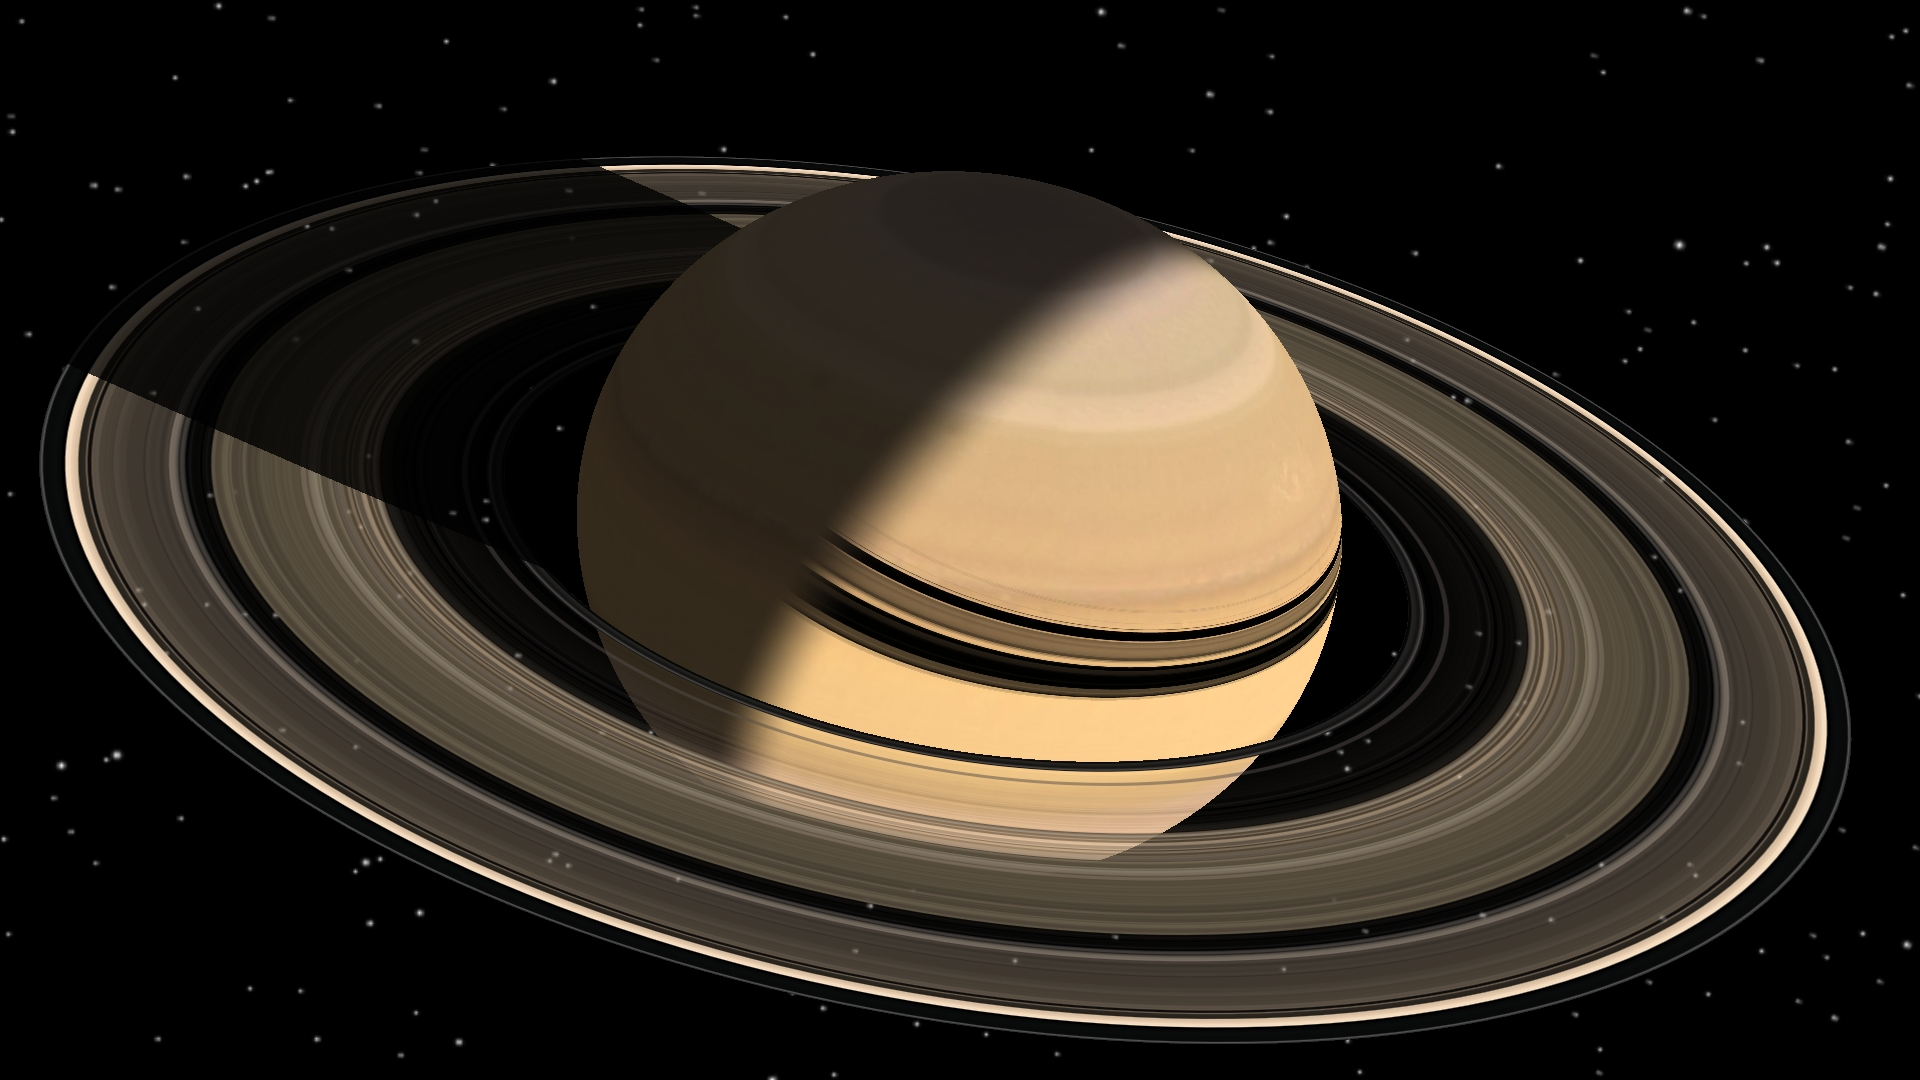 Visualization of Saturn, rings and moons using OpenGL Shaders